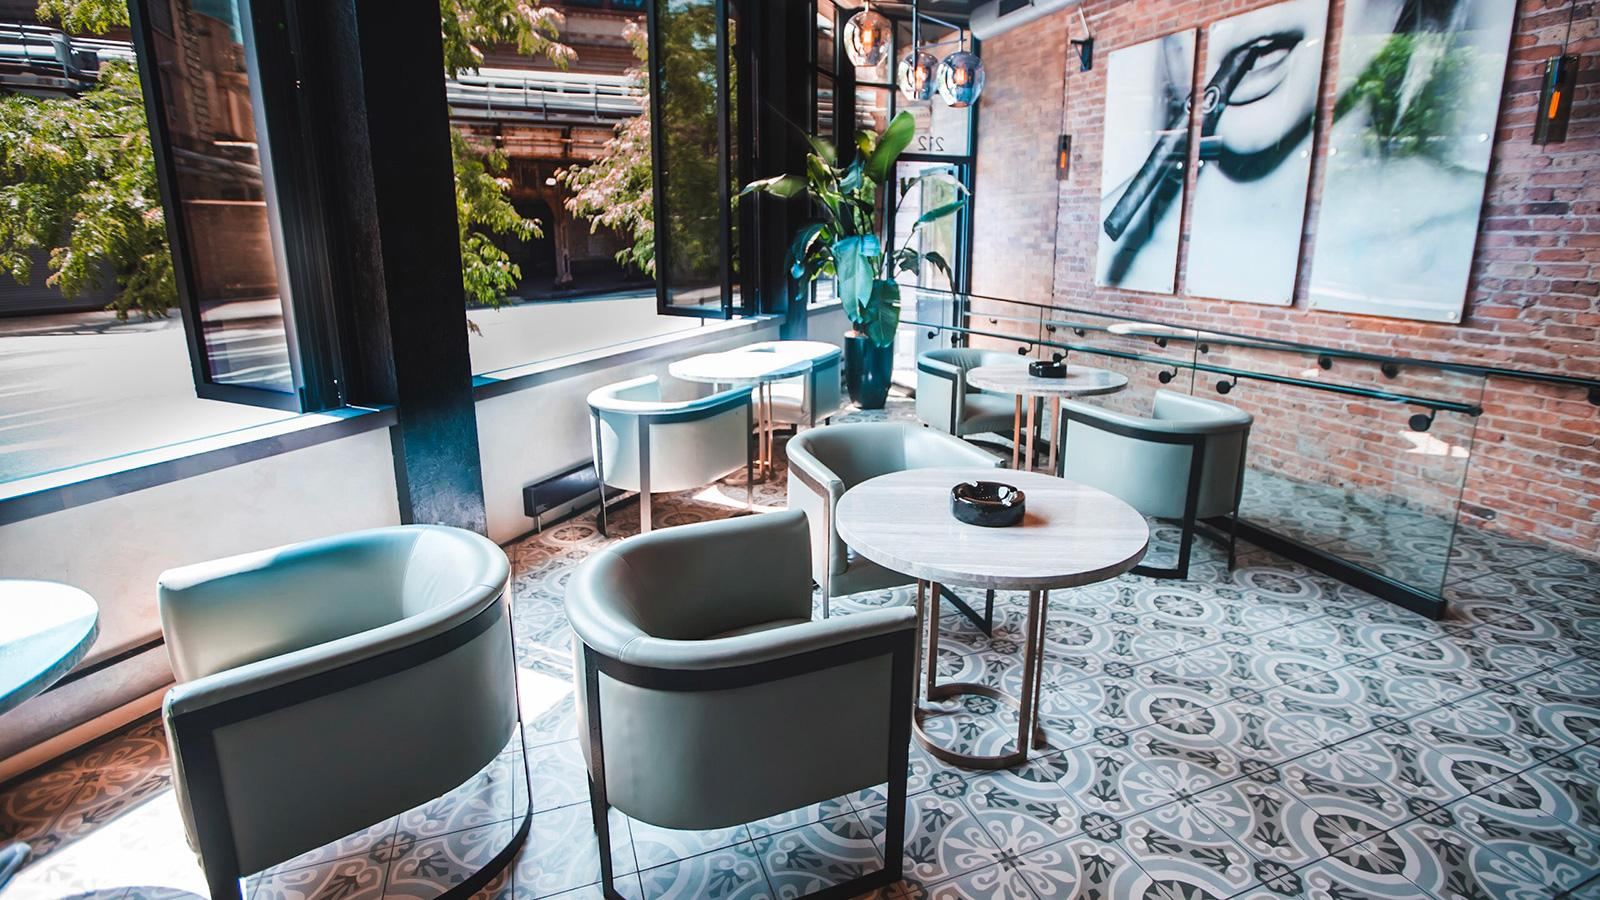 Enjoy the gray-green leather chairs at the marble tables next to the open windows.